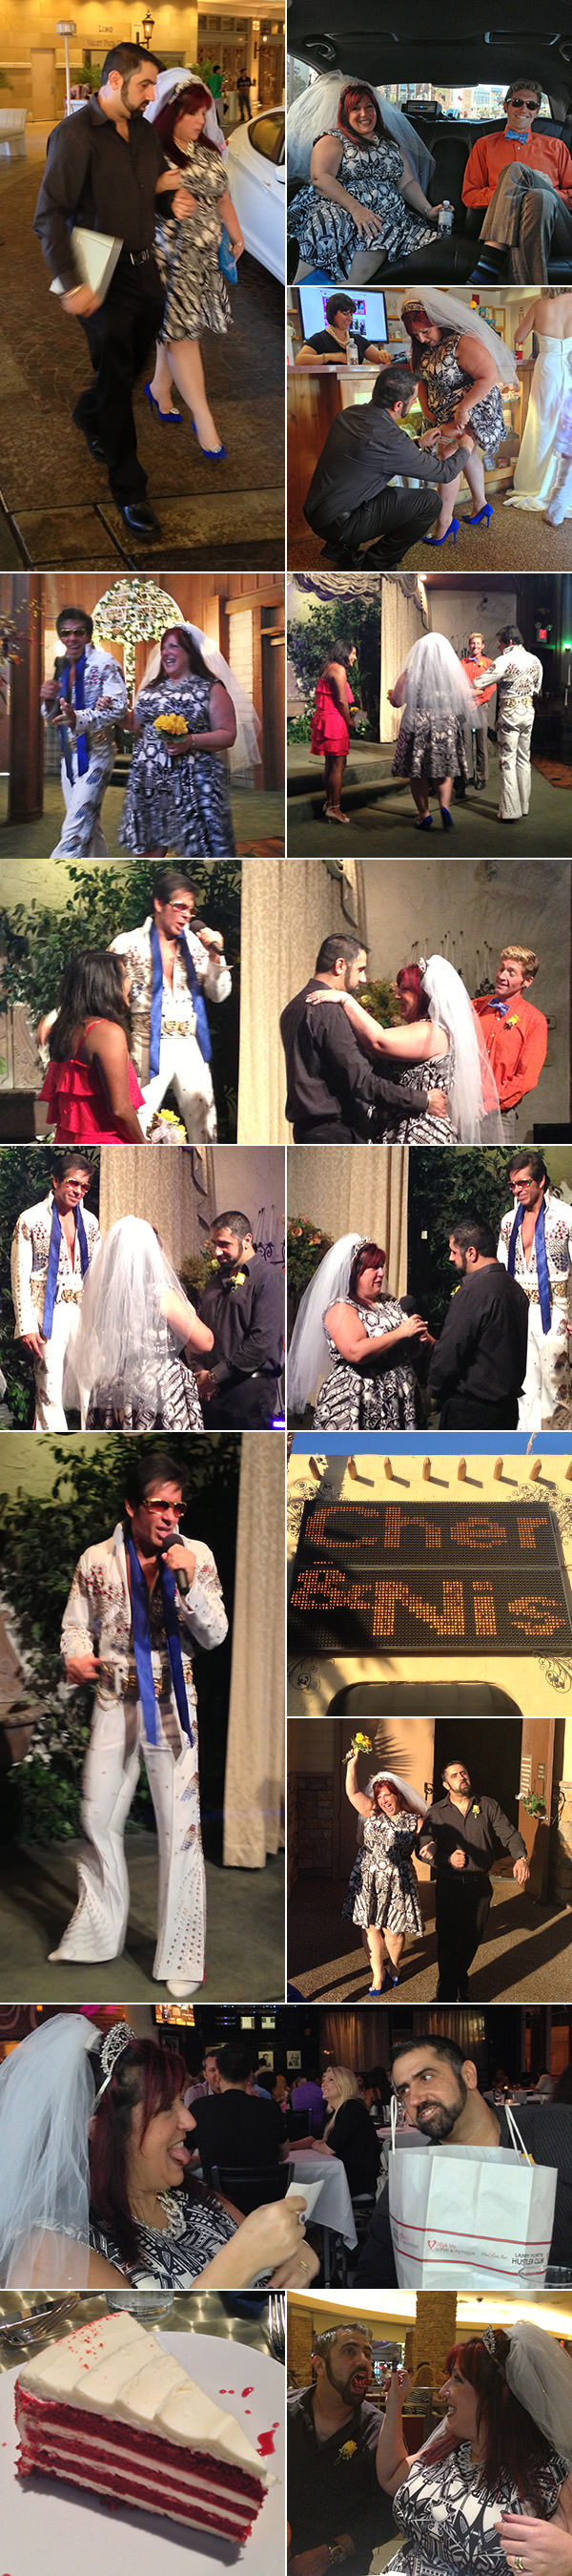 Cher & Nis Wedding